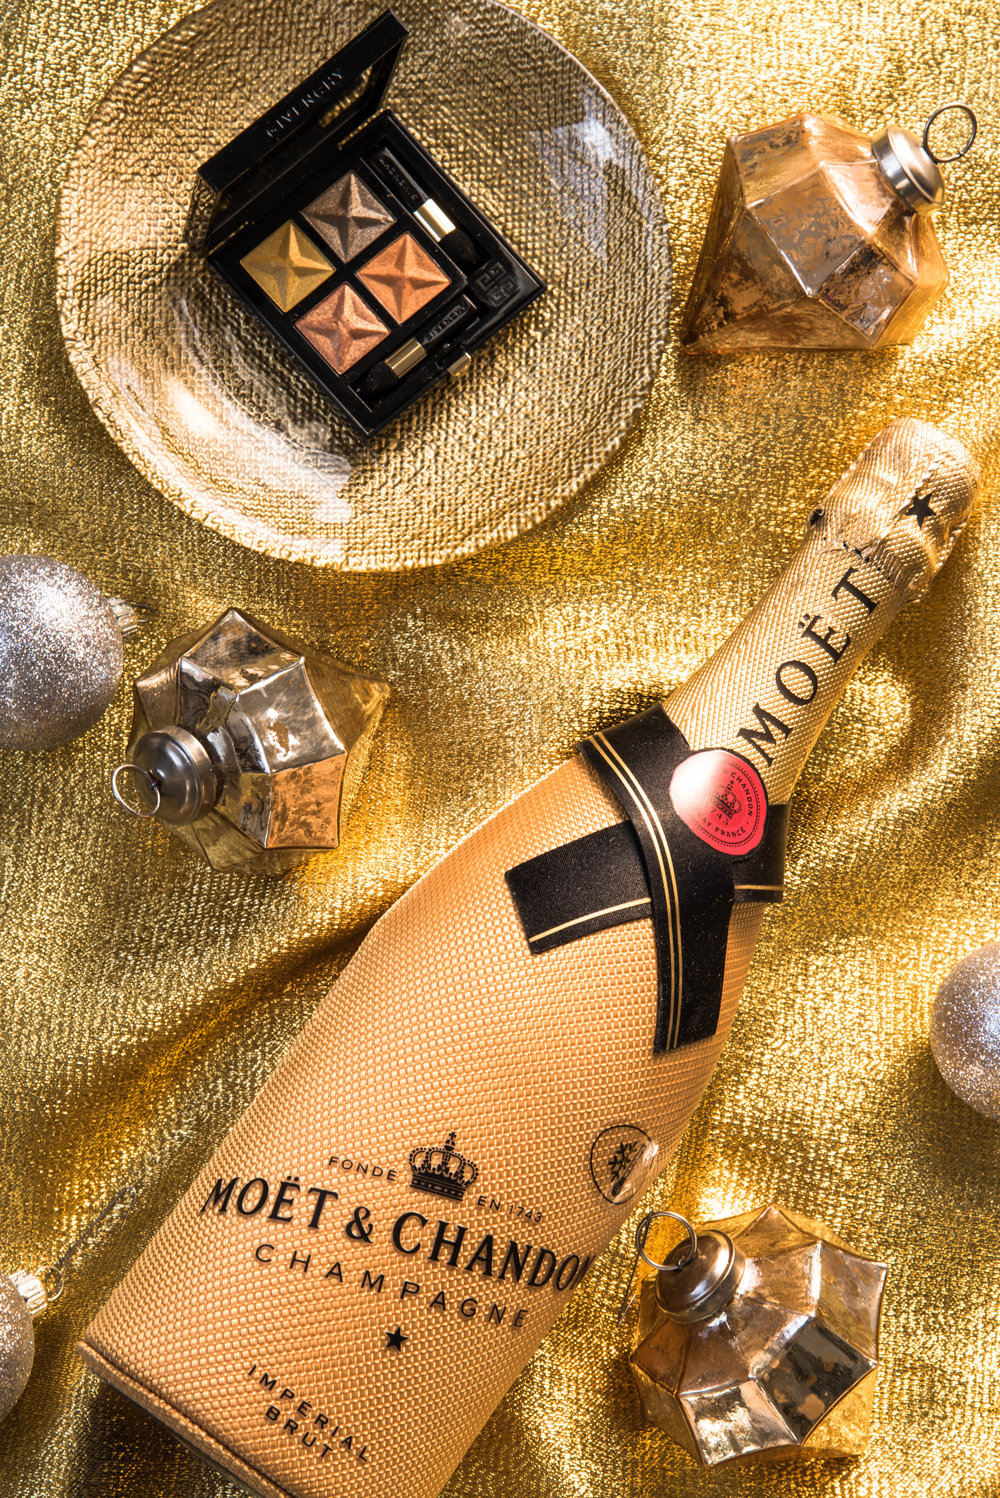 ROSE & IVY Journal Holiday Gift Guide Gold Moet Chandon & Givenchy